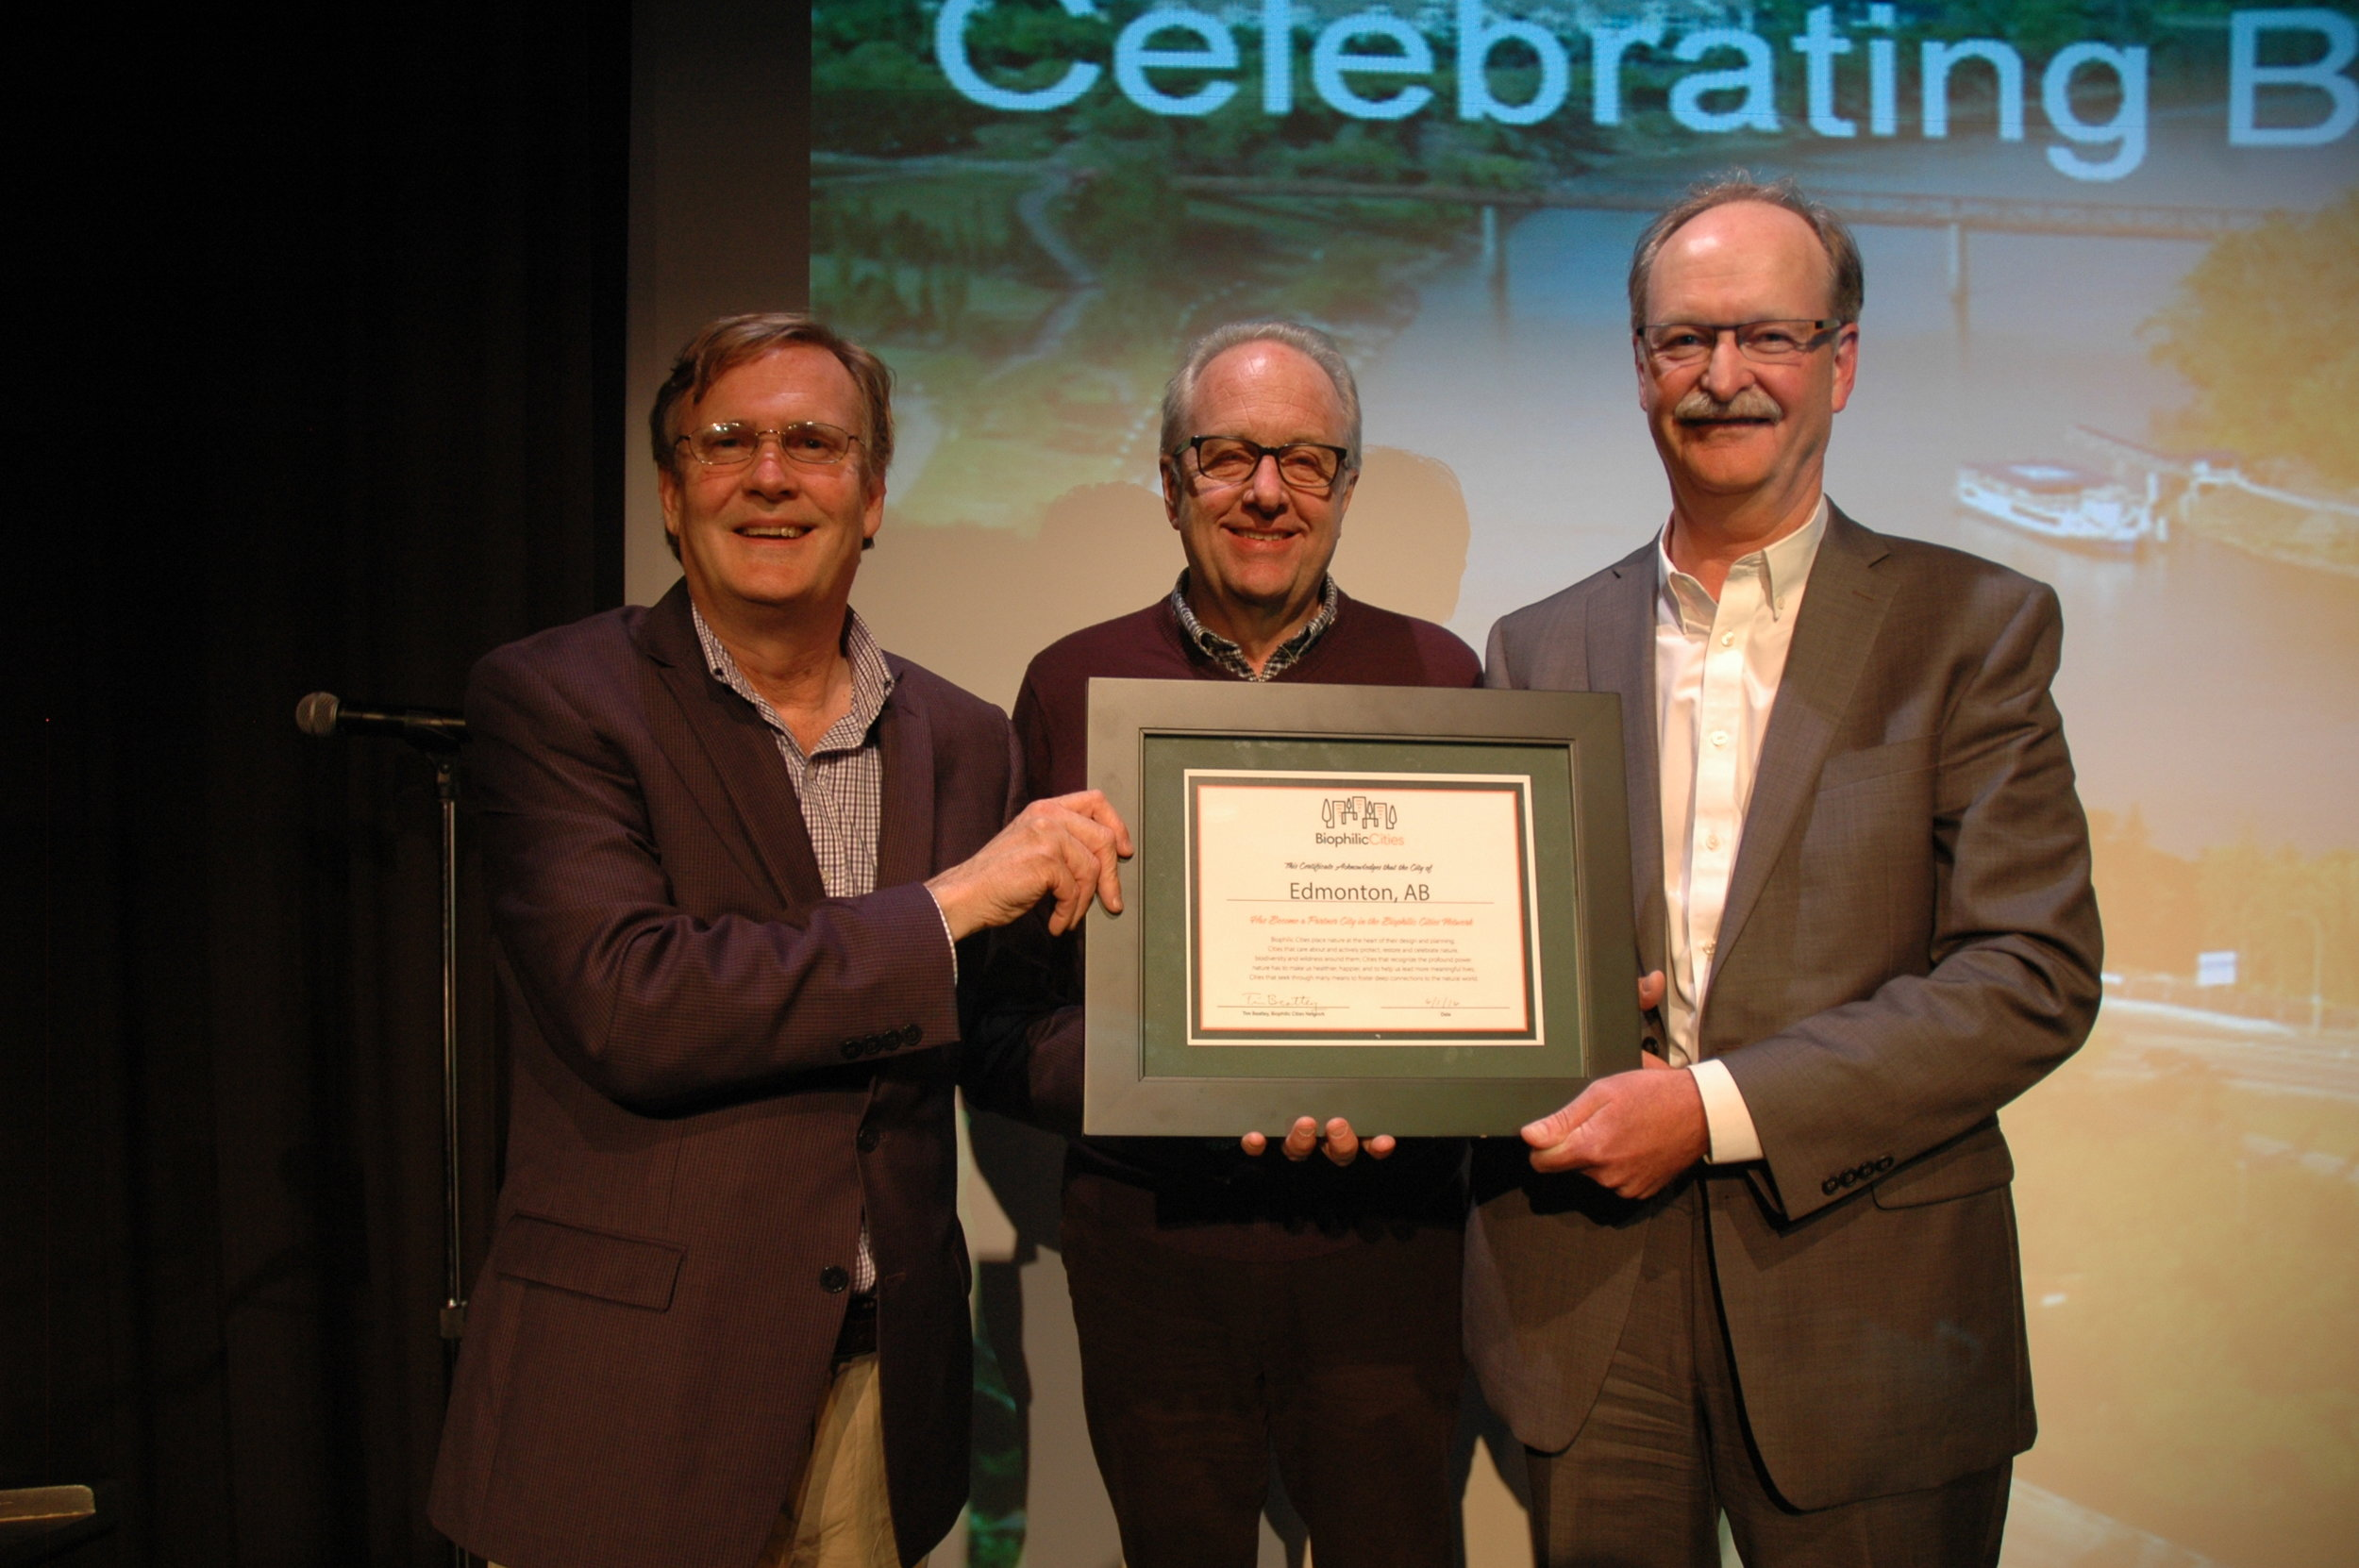 Tim Beatley Presents Network Certificate to Edmonton's Grant Pearsell and Peter Ohm